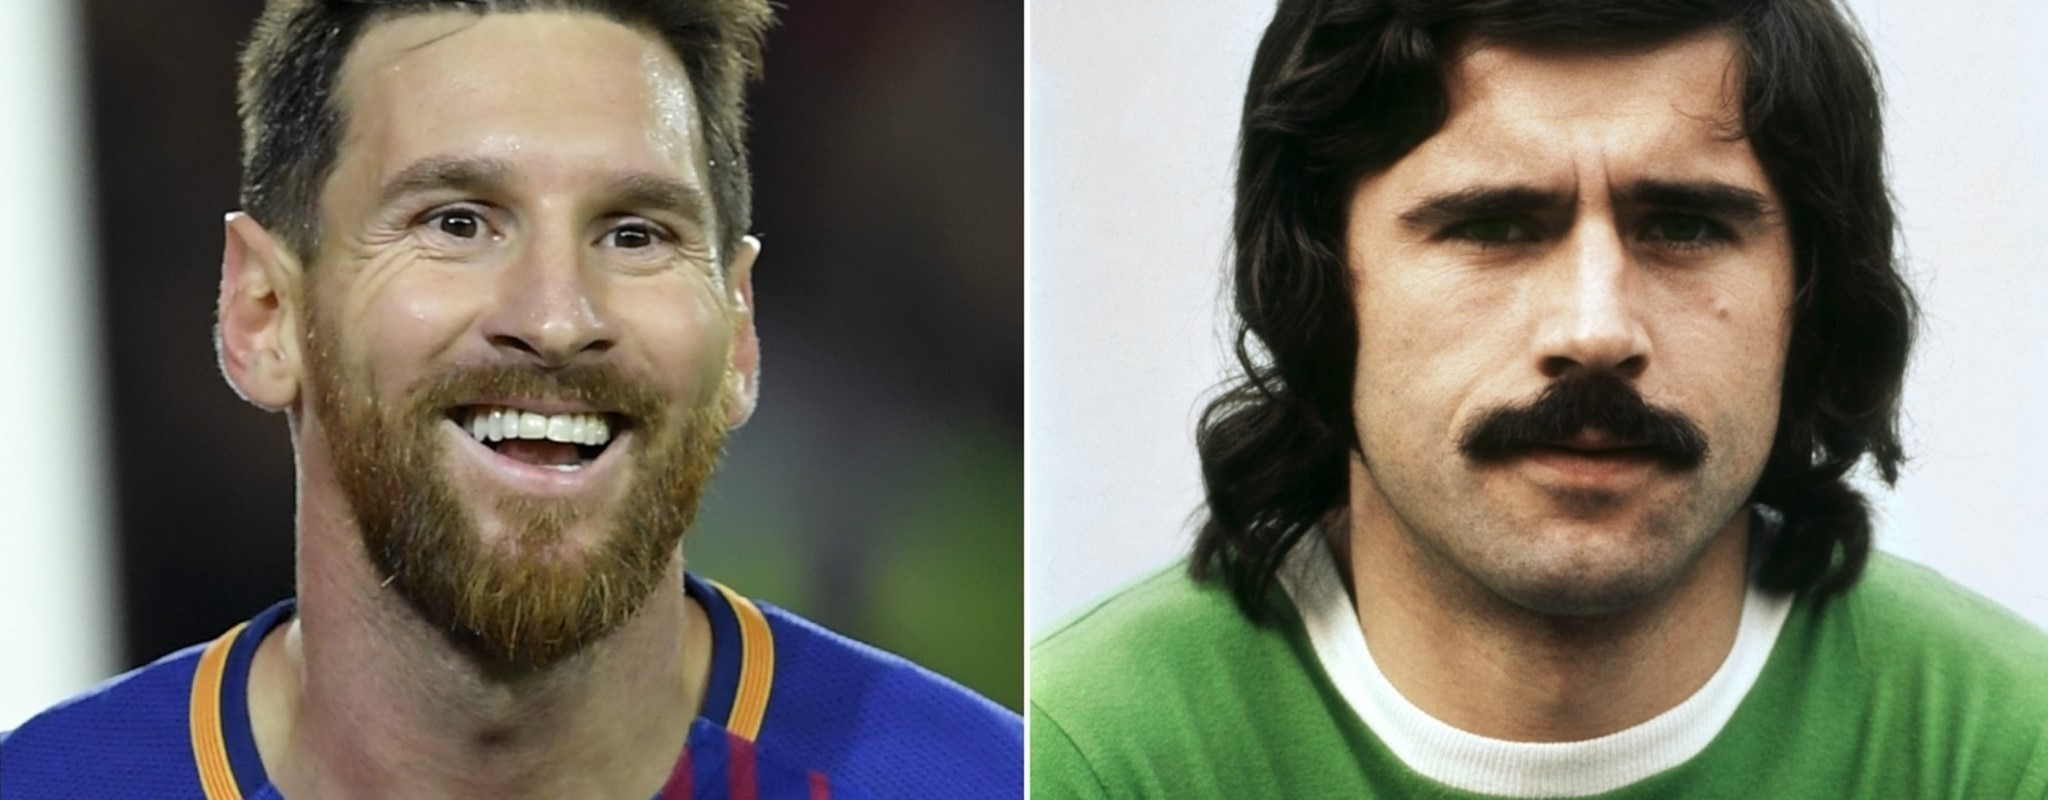 How do Gerd Müller and Lionel Messi compare?